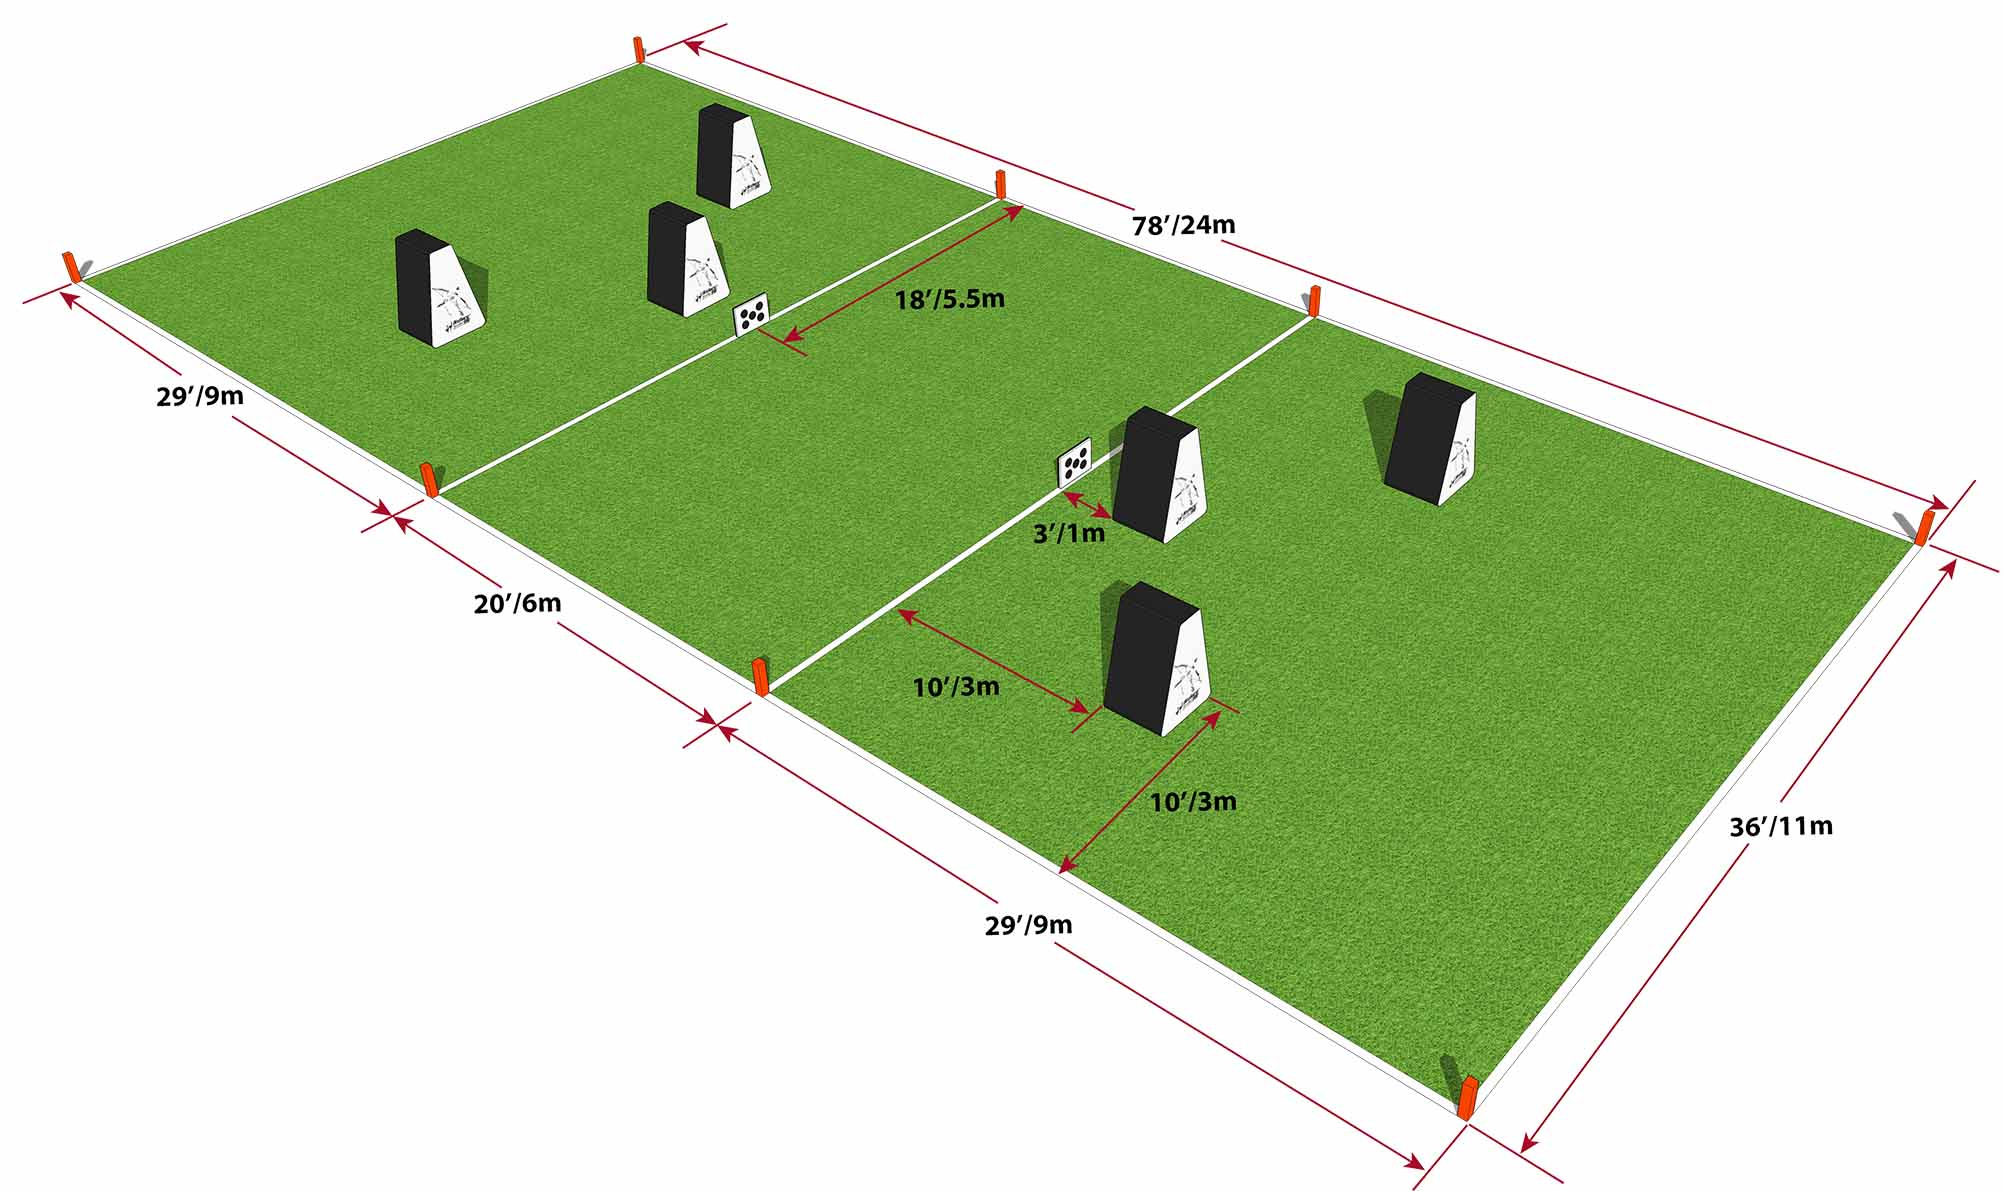 Archery Tag® Field Layout